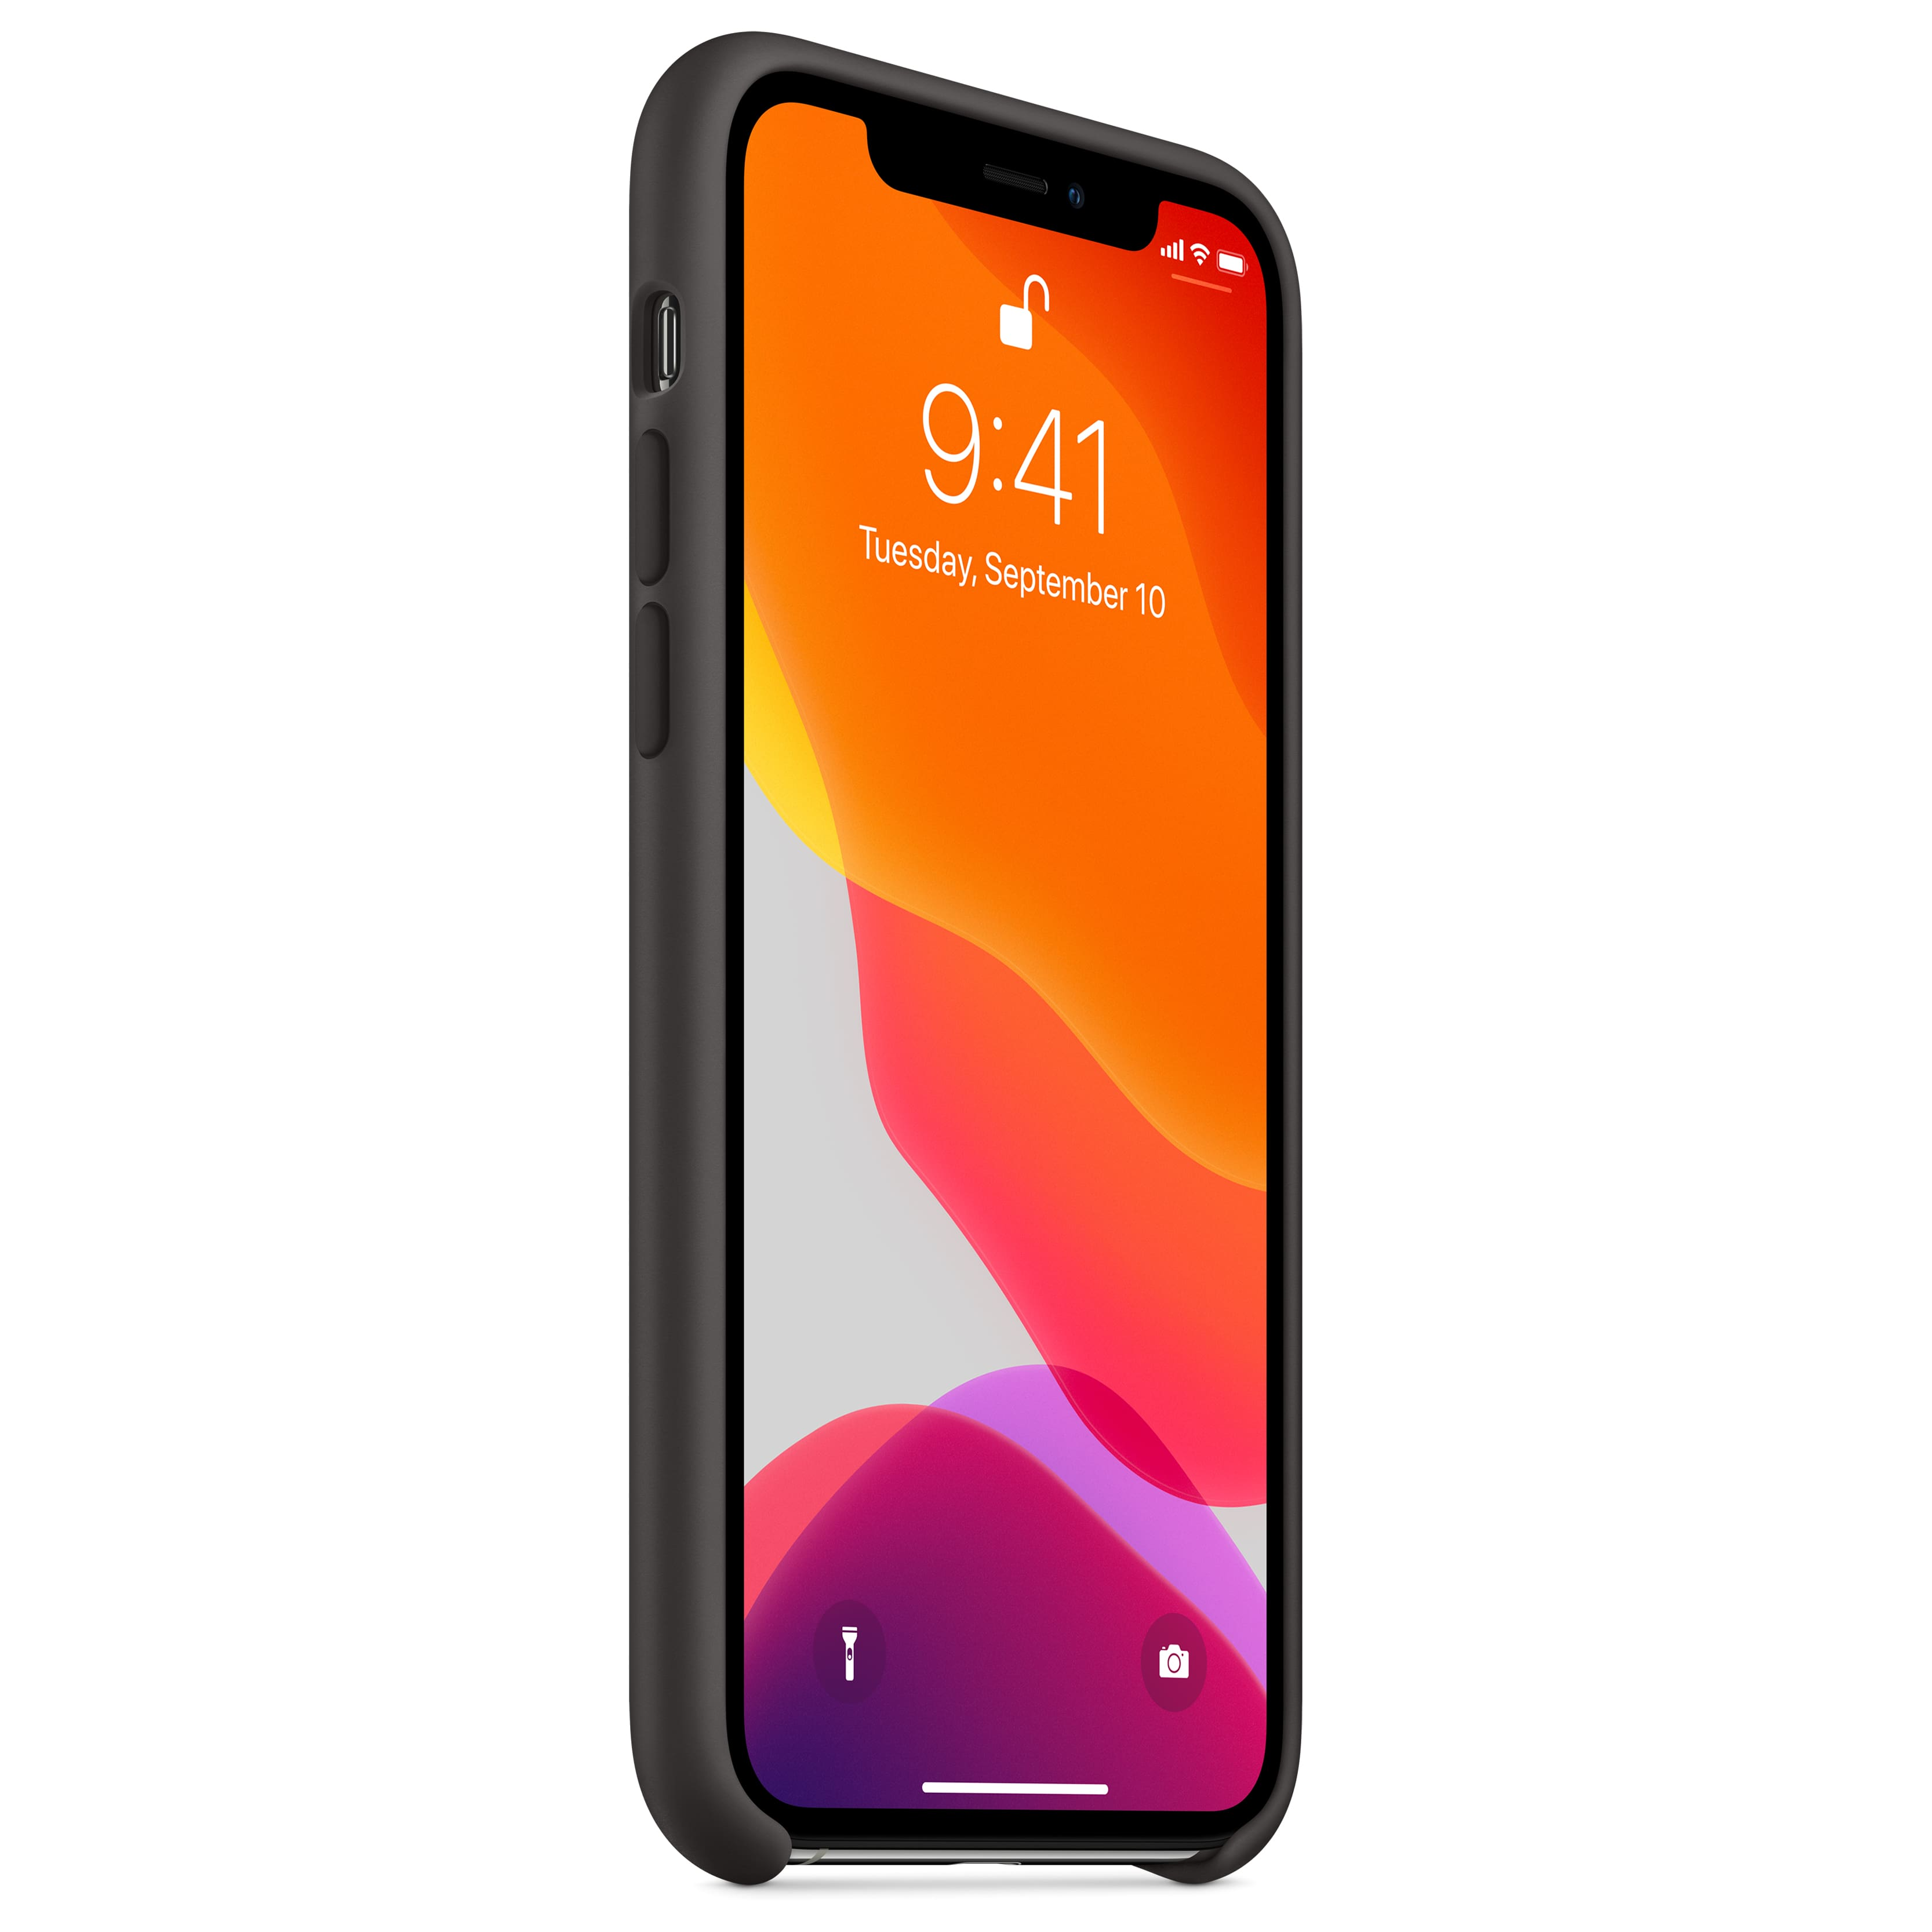 Apple iPhone Silicone Case: iPhone 11 (White) $13.15, iPhone 11 Pro (Black)